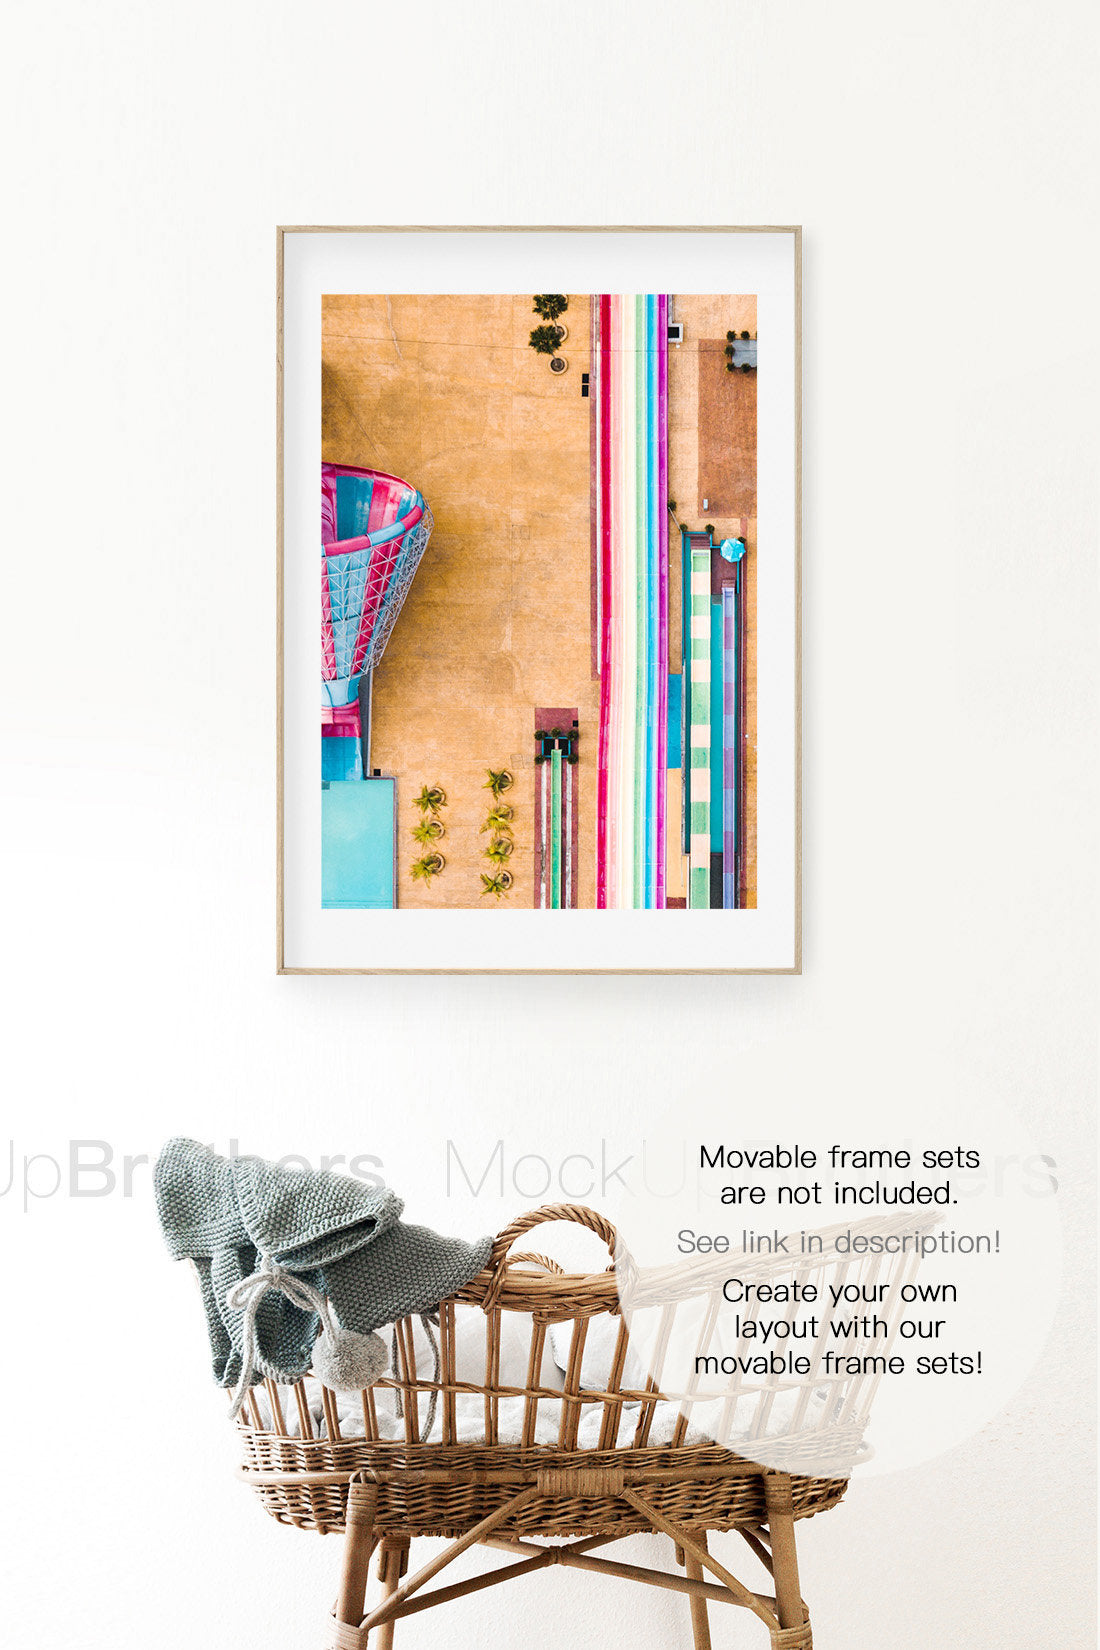 Nursery frame mock up by Mockup Brothers